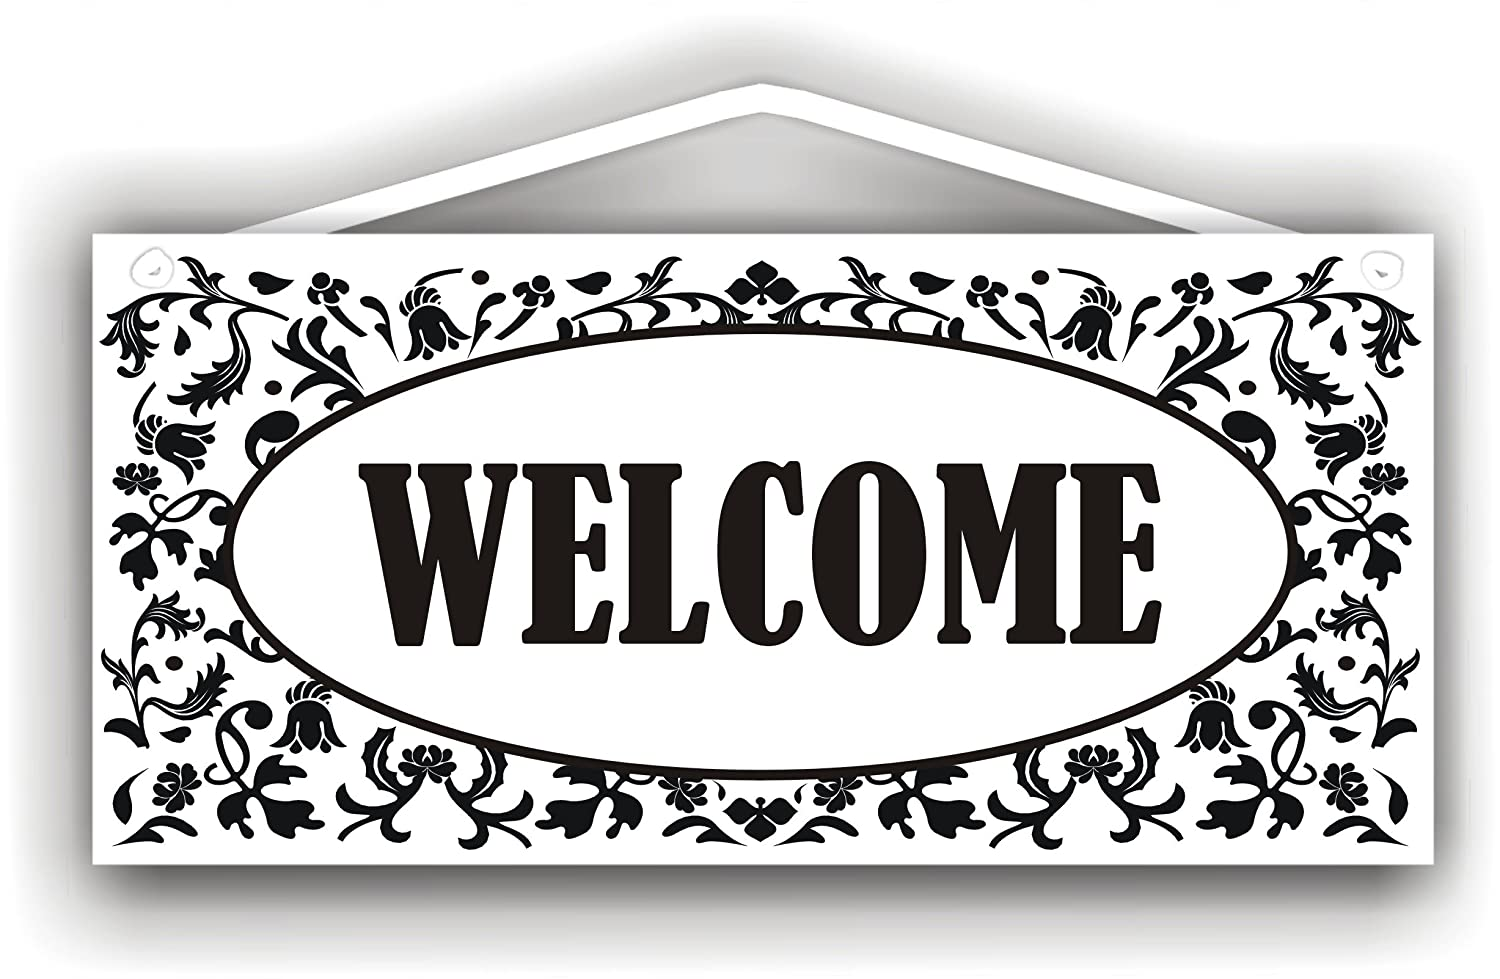 Amazon.com: WELCOME sign for Indoor or Outdoor use by MySigncraft ...